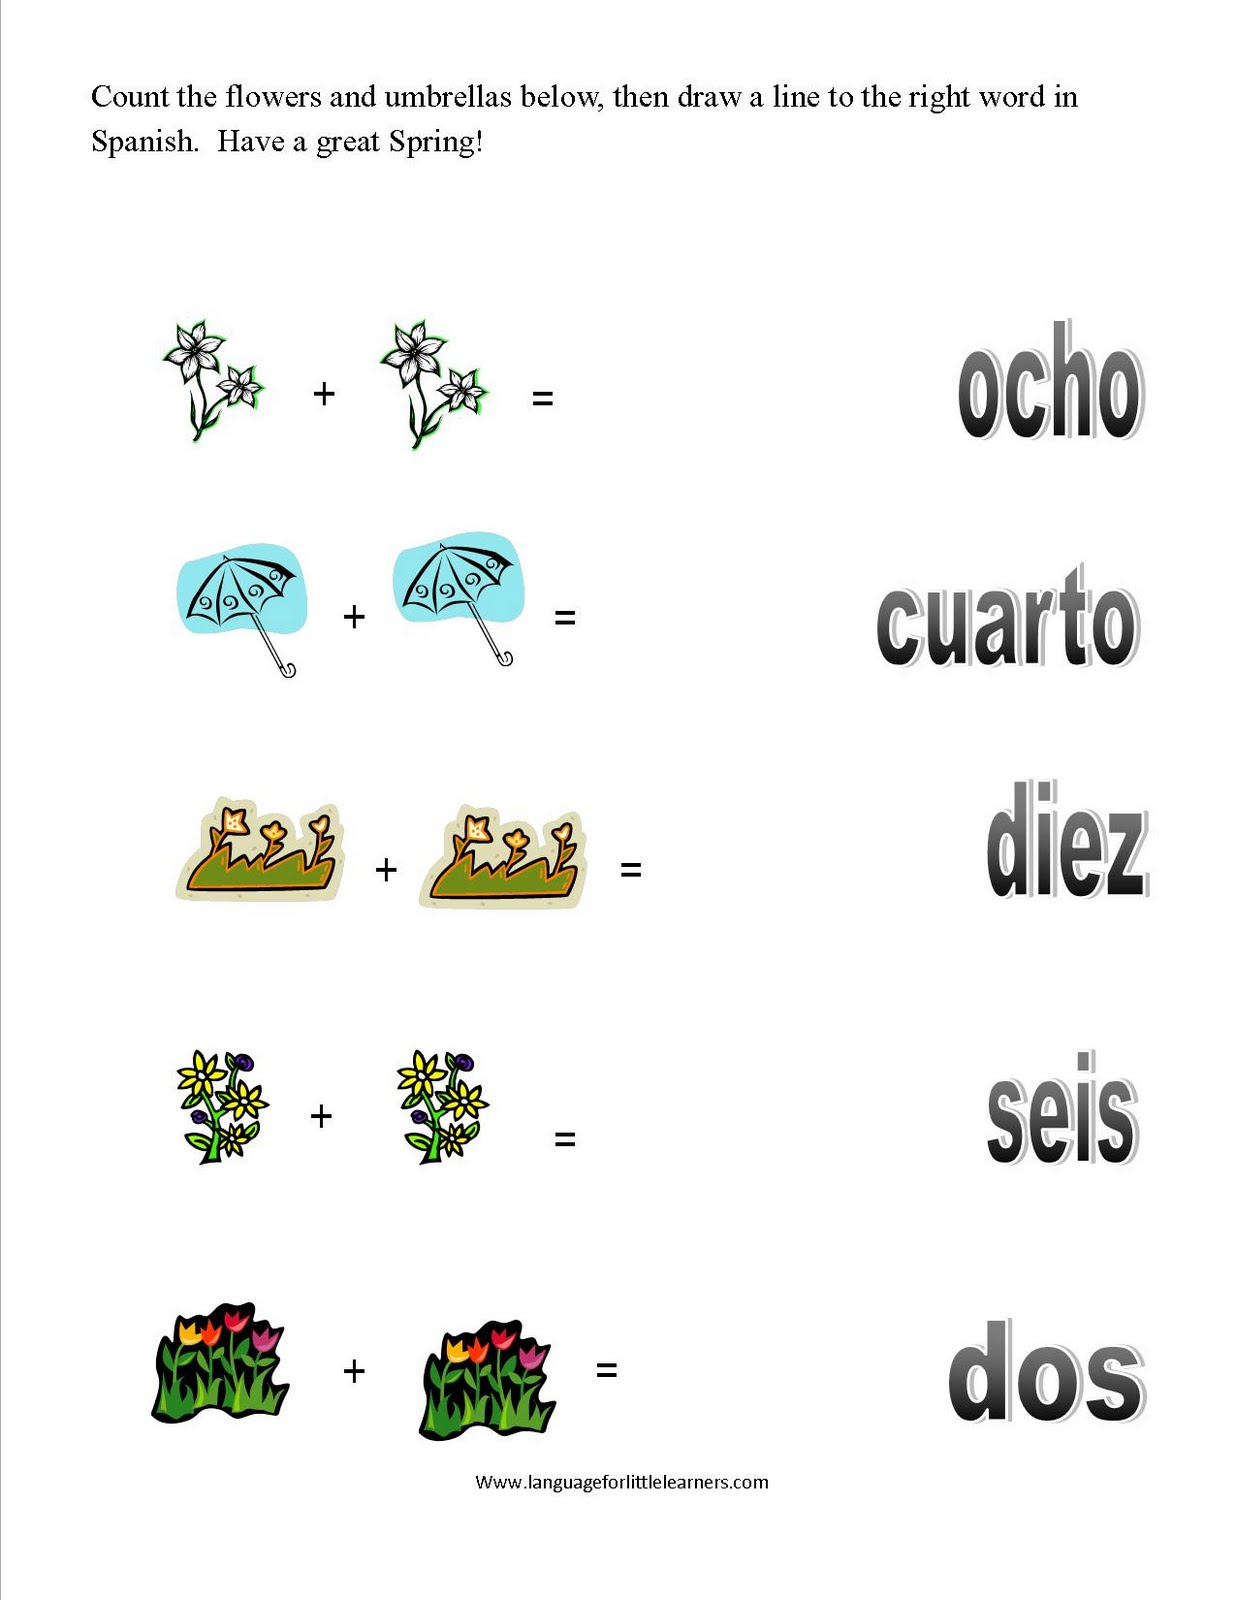 Spanish For Little Learners March